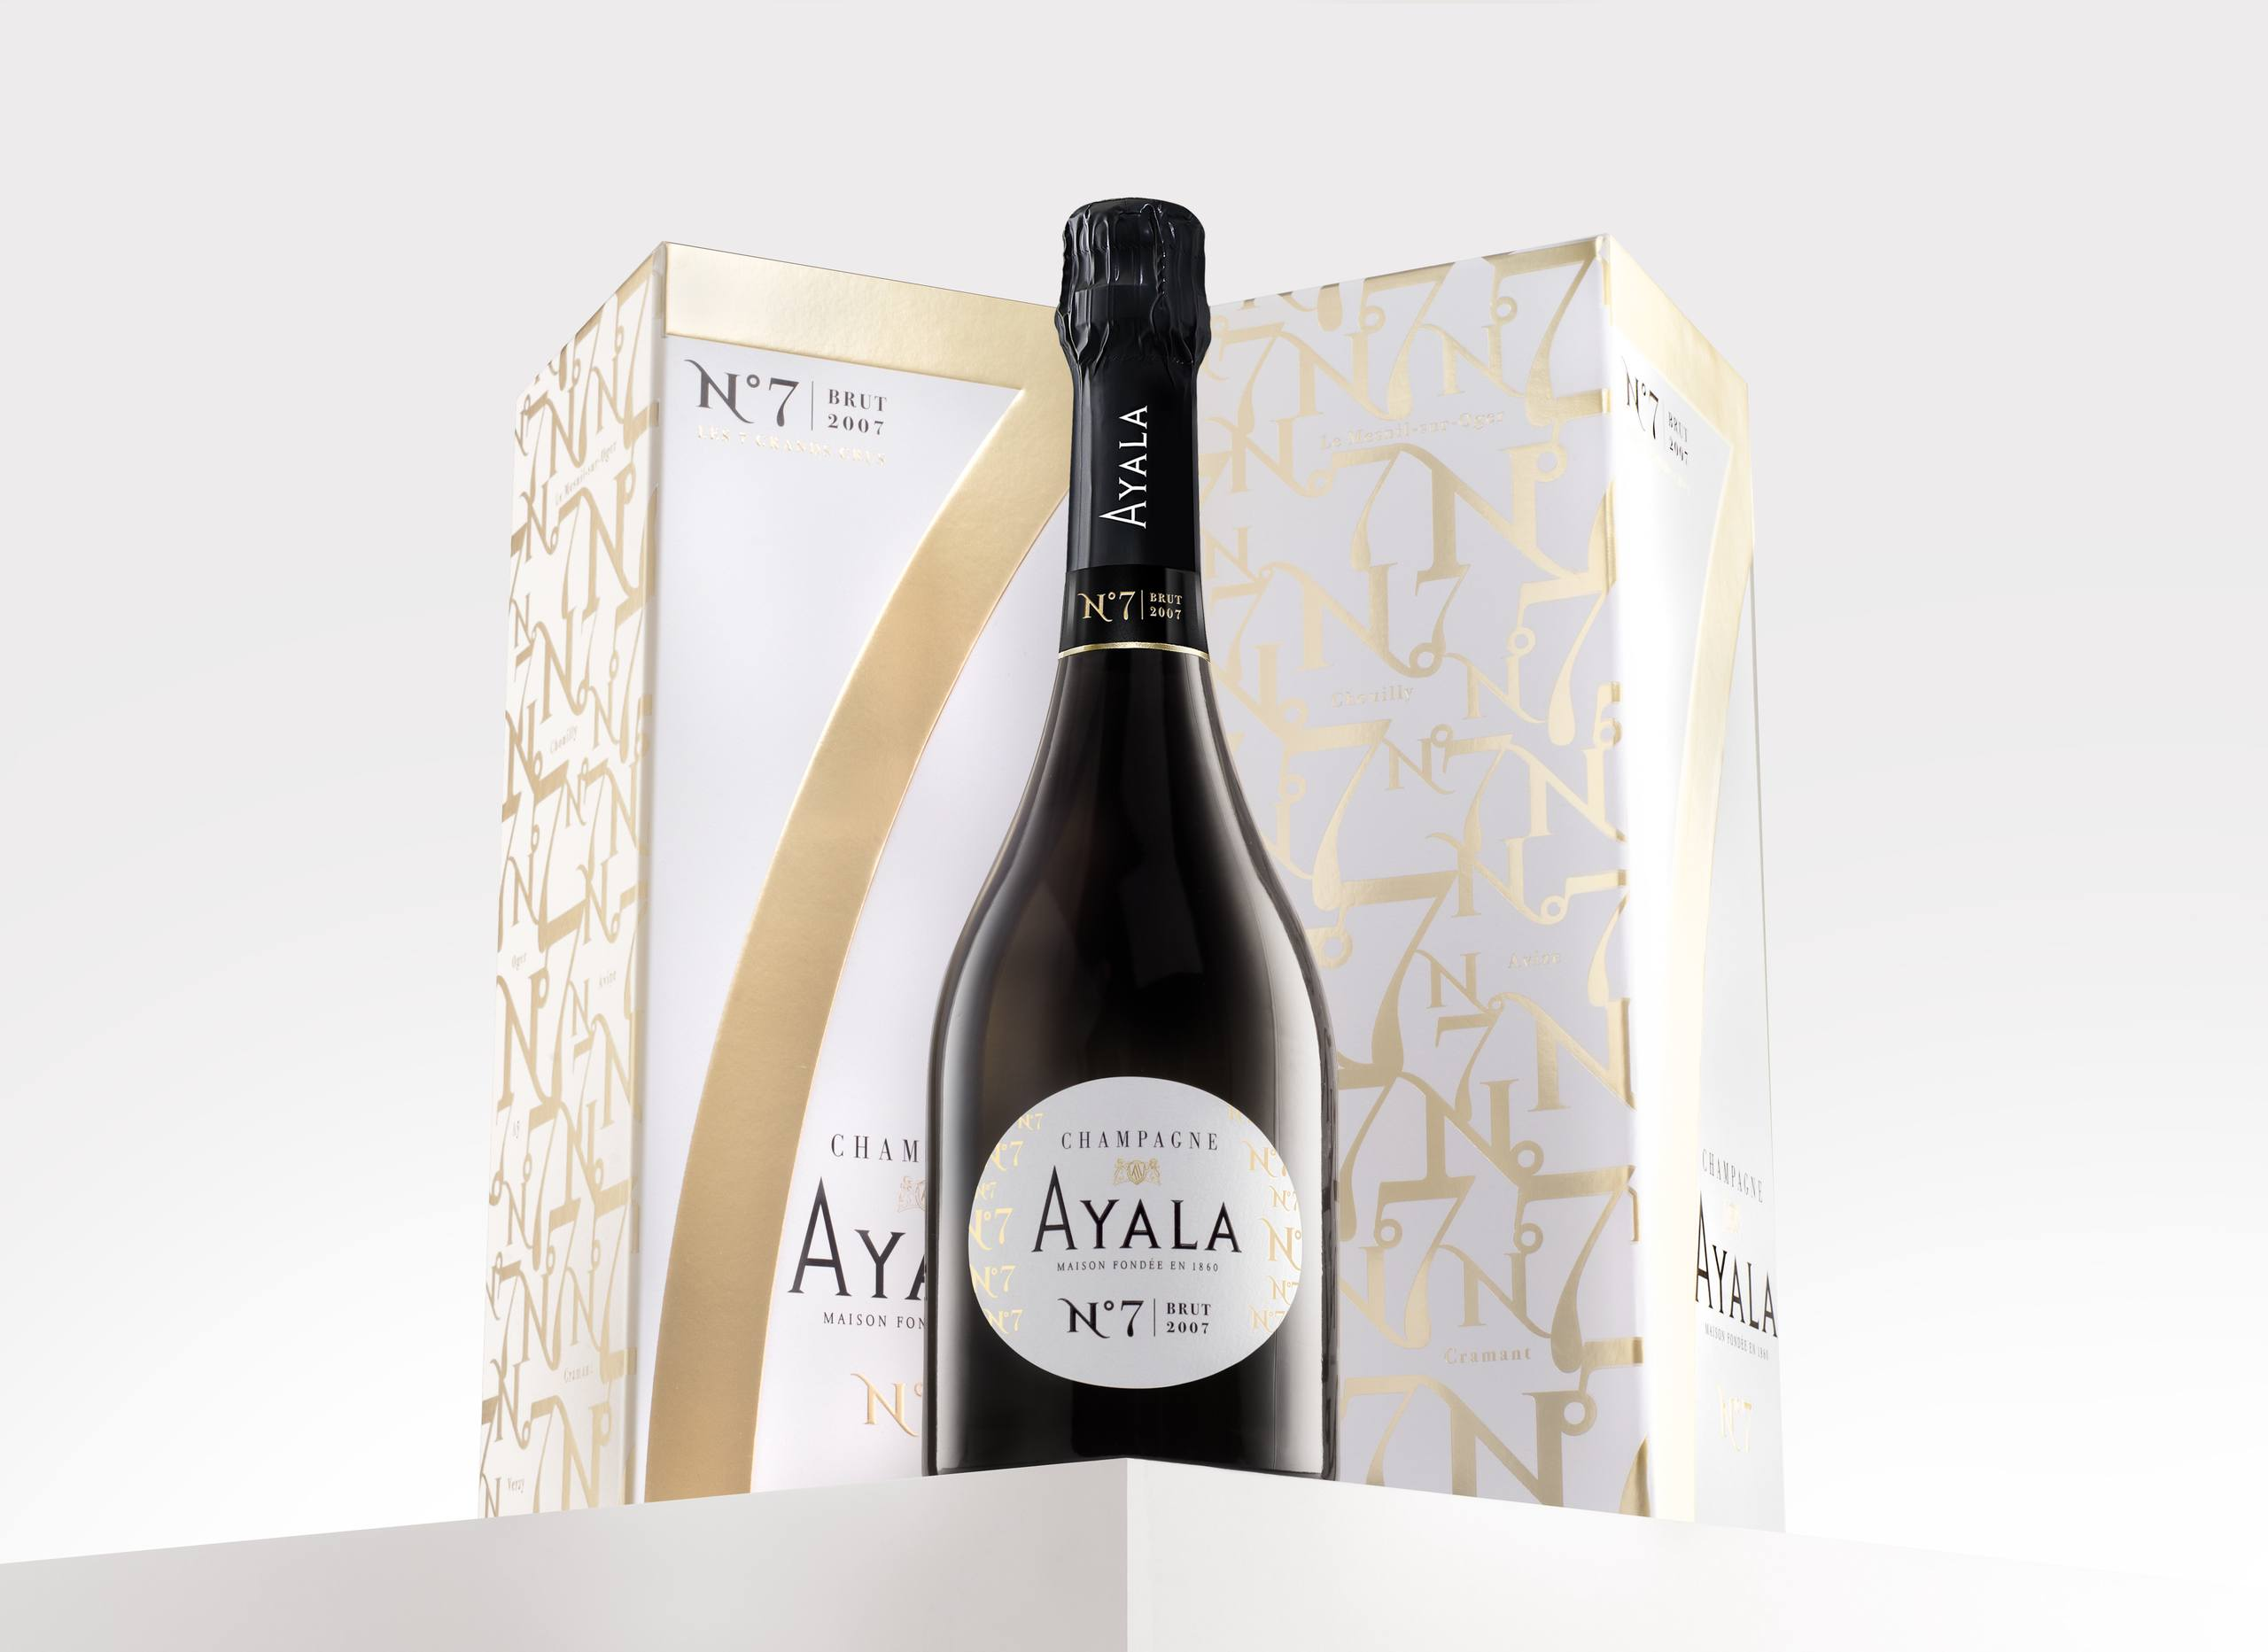 DIE COLLECTION AYALA - Champagne Ayala